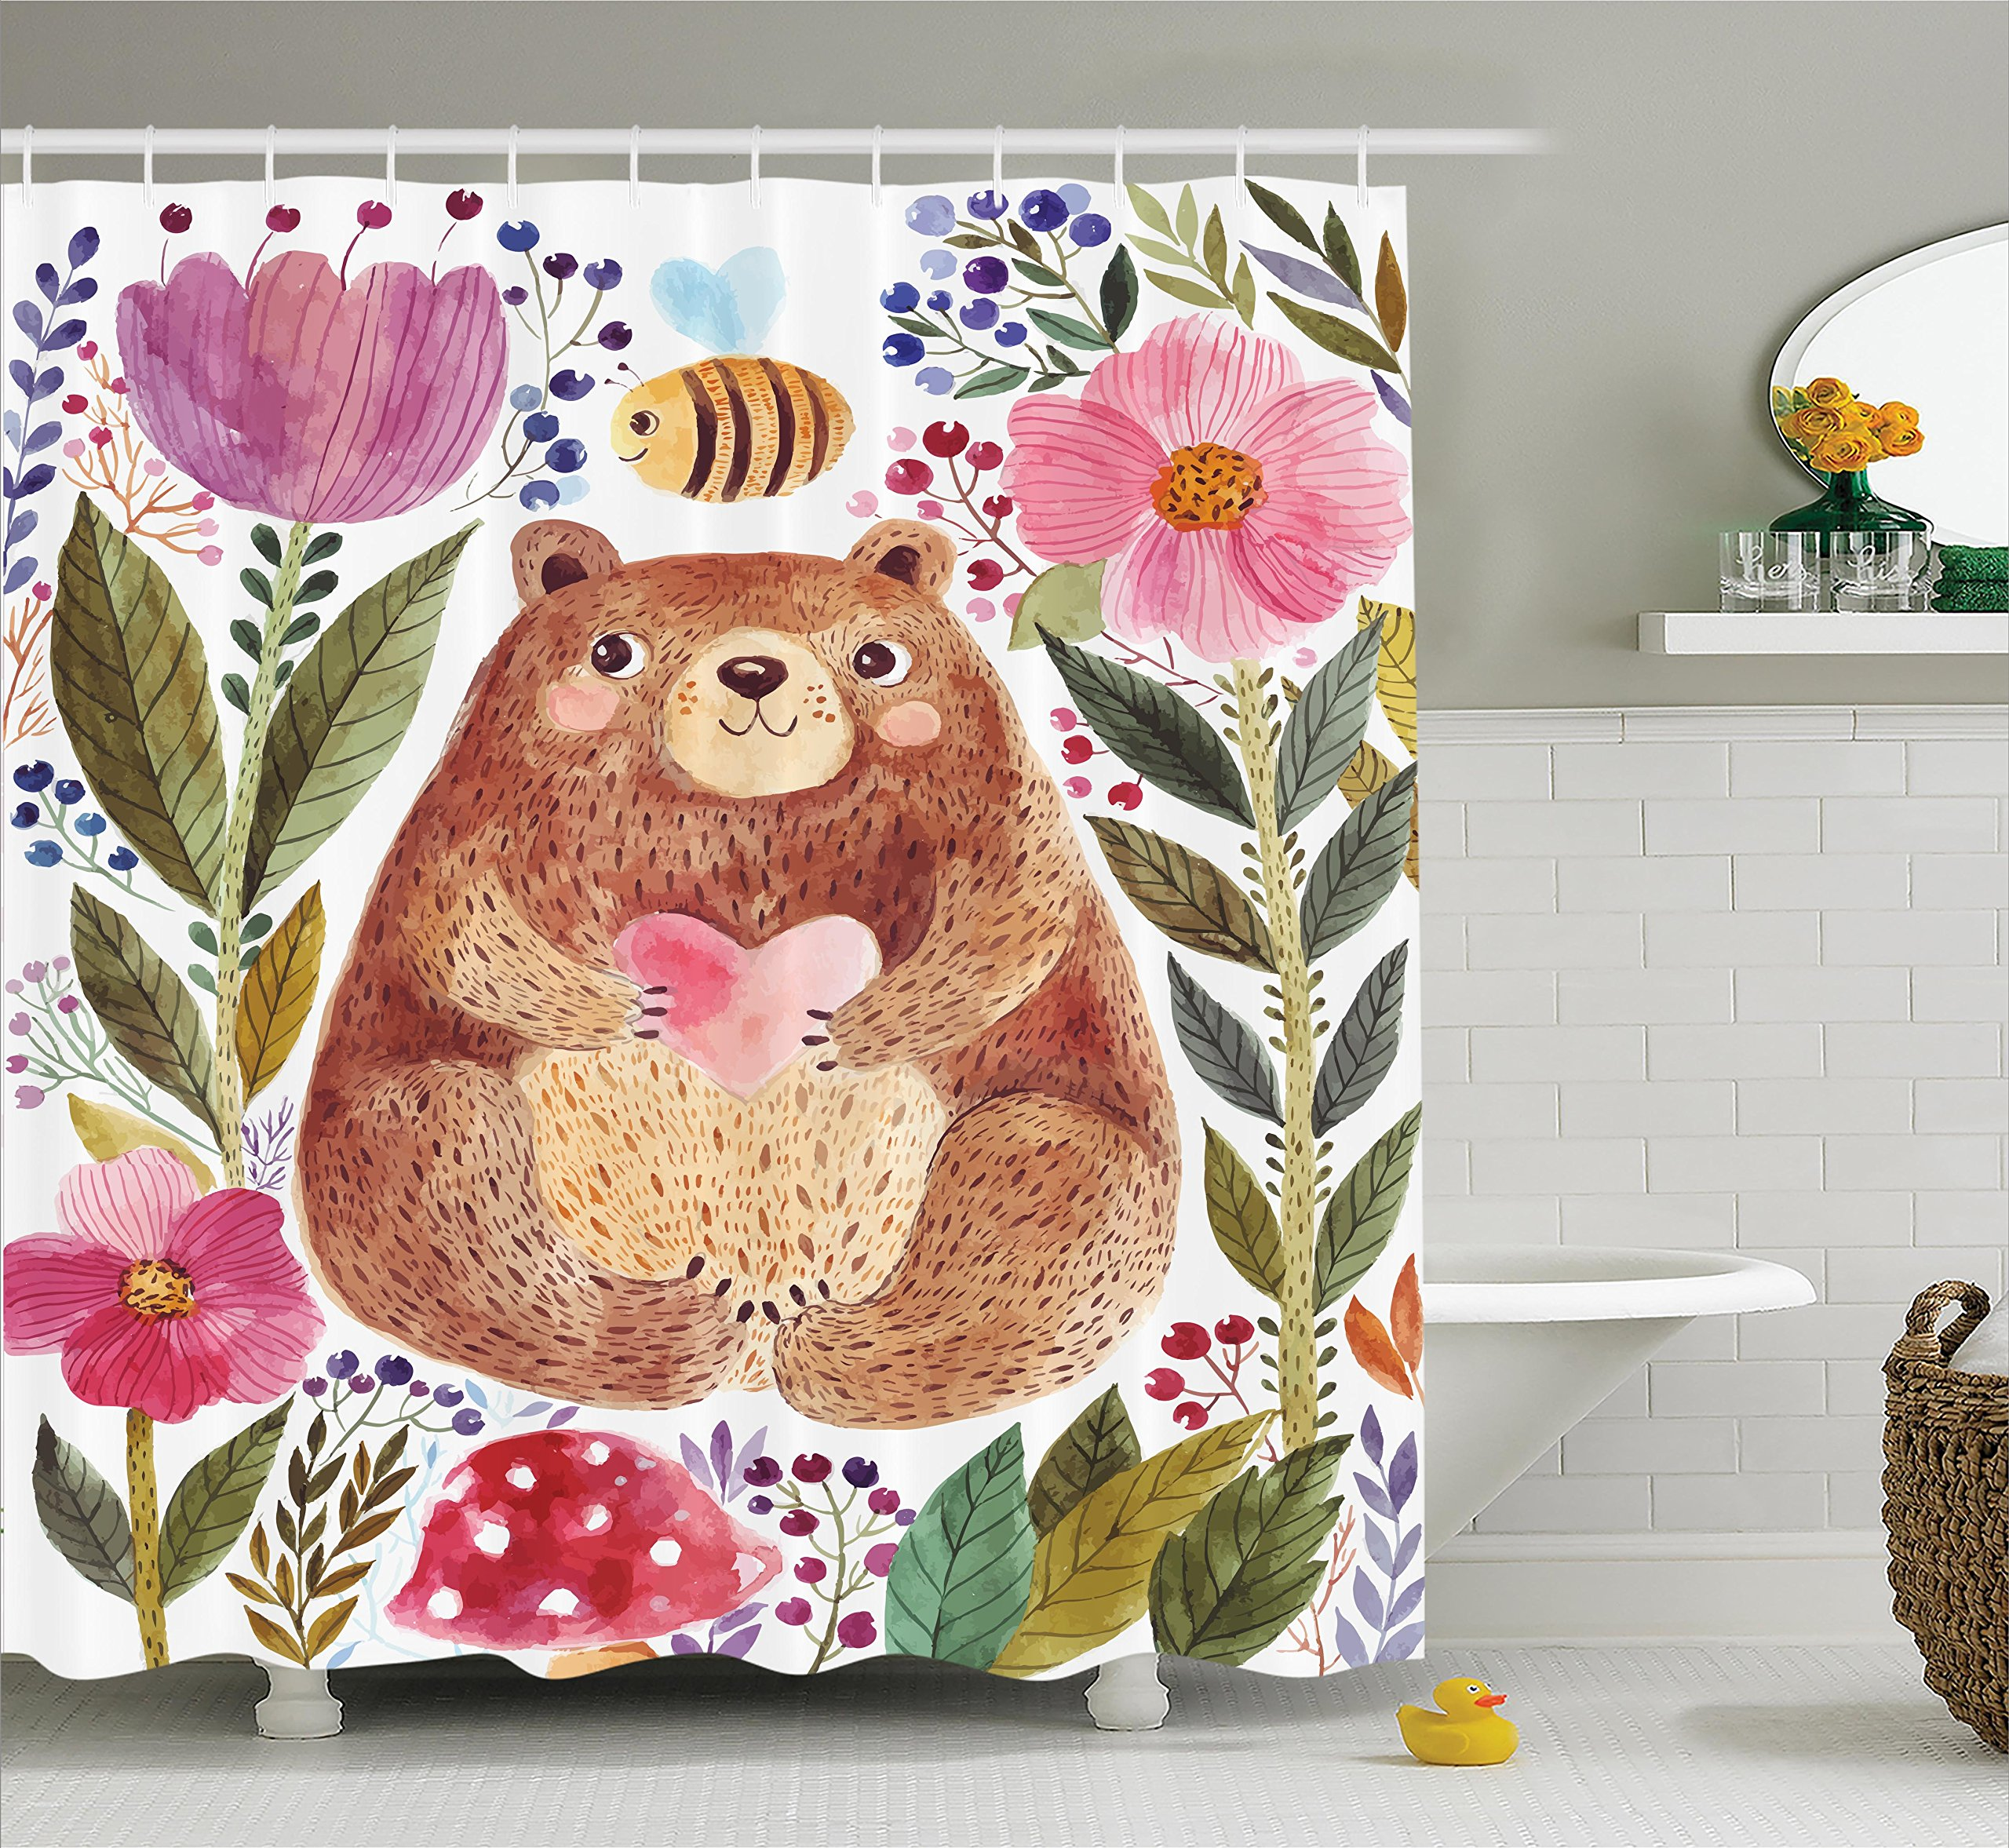 Ambesonne Watercolor Flower Decor Shower Curtain Set, Modern Illustration of Cute Bear with Flowers and Bee Animal Spirit Artsy Nature, Bathroom Accessories, 84 inches Extralong, Multi